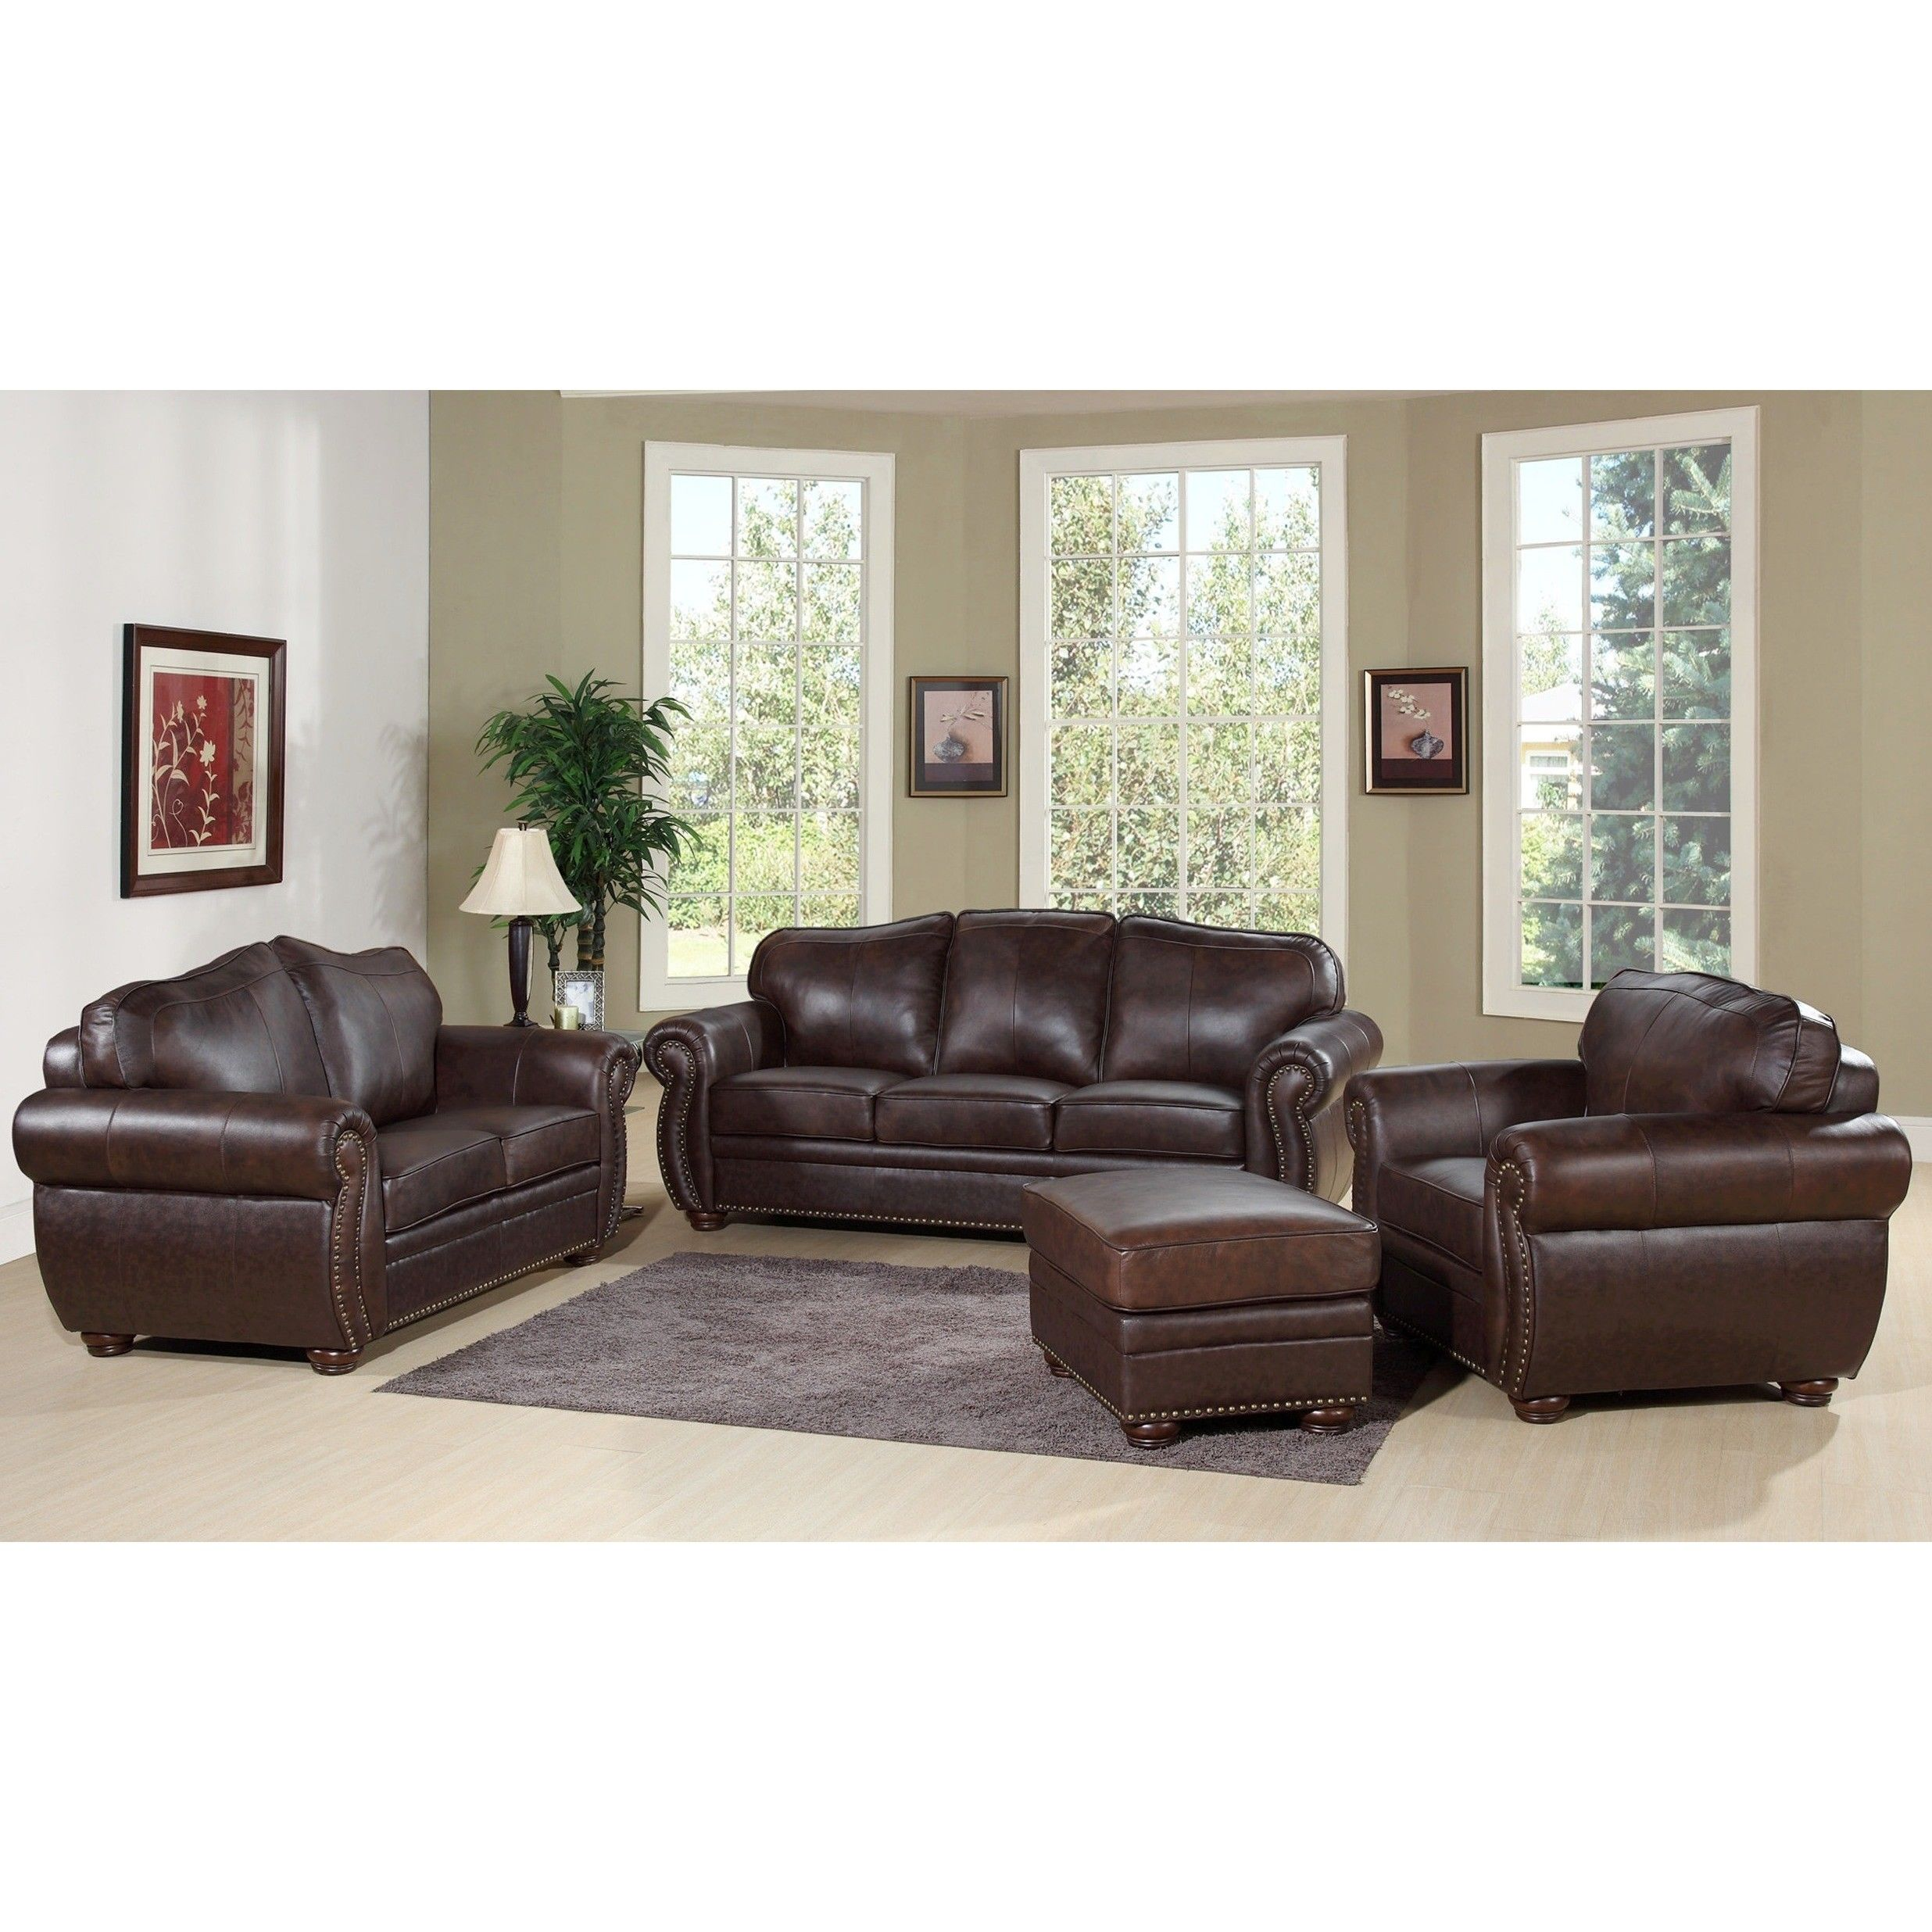 beautiful serta sofa and loveseat inspiration-Contemporary Serta sofa and Loveseat Picture